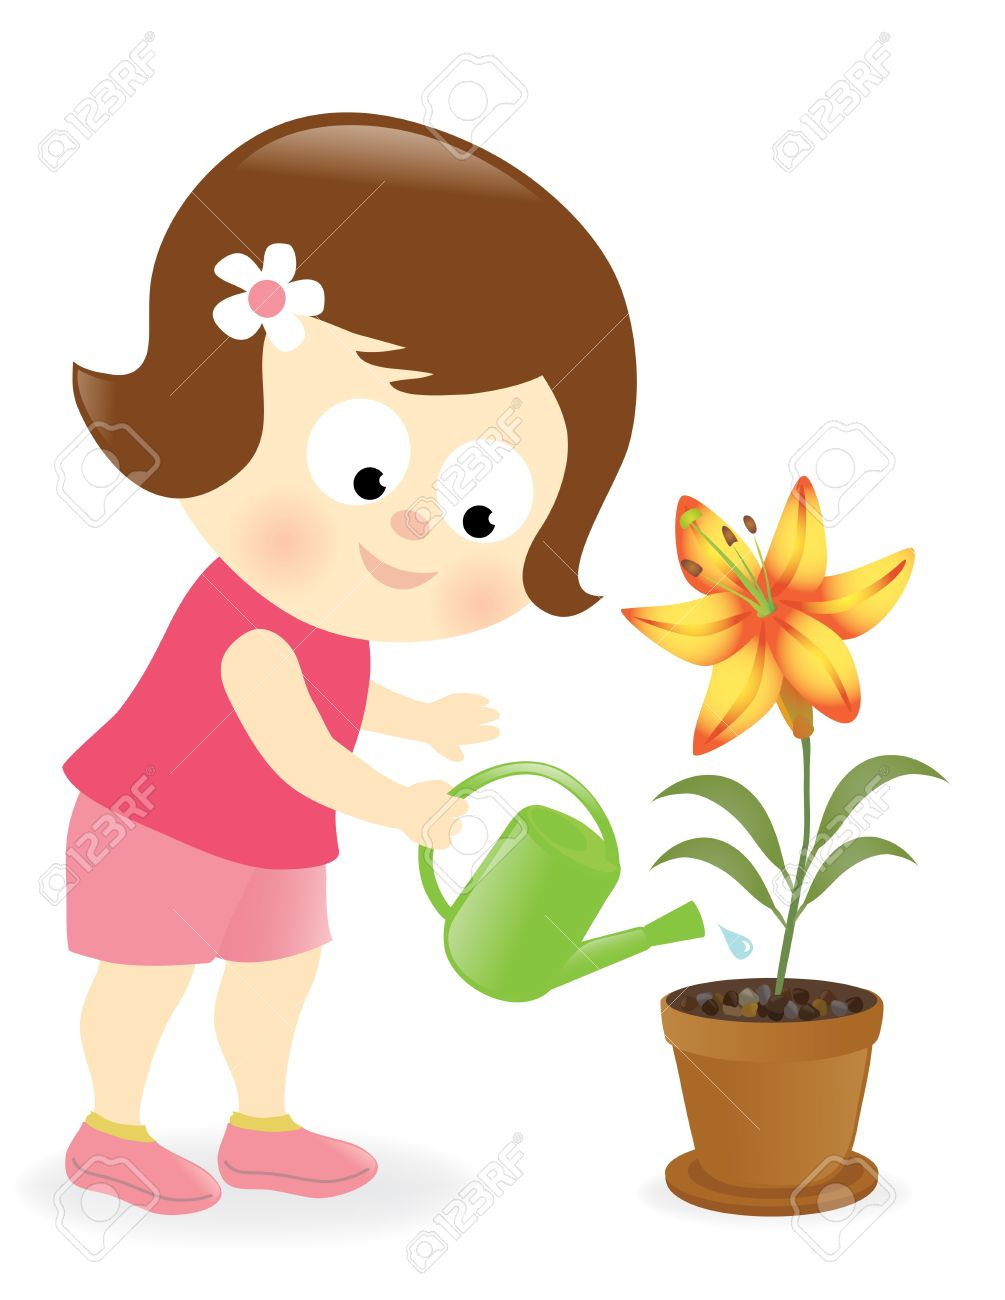 Girl watering plants clipart 5 » Clipart Station